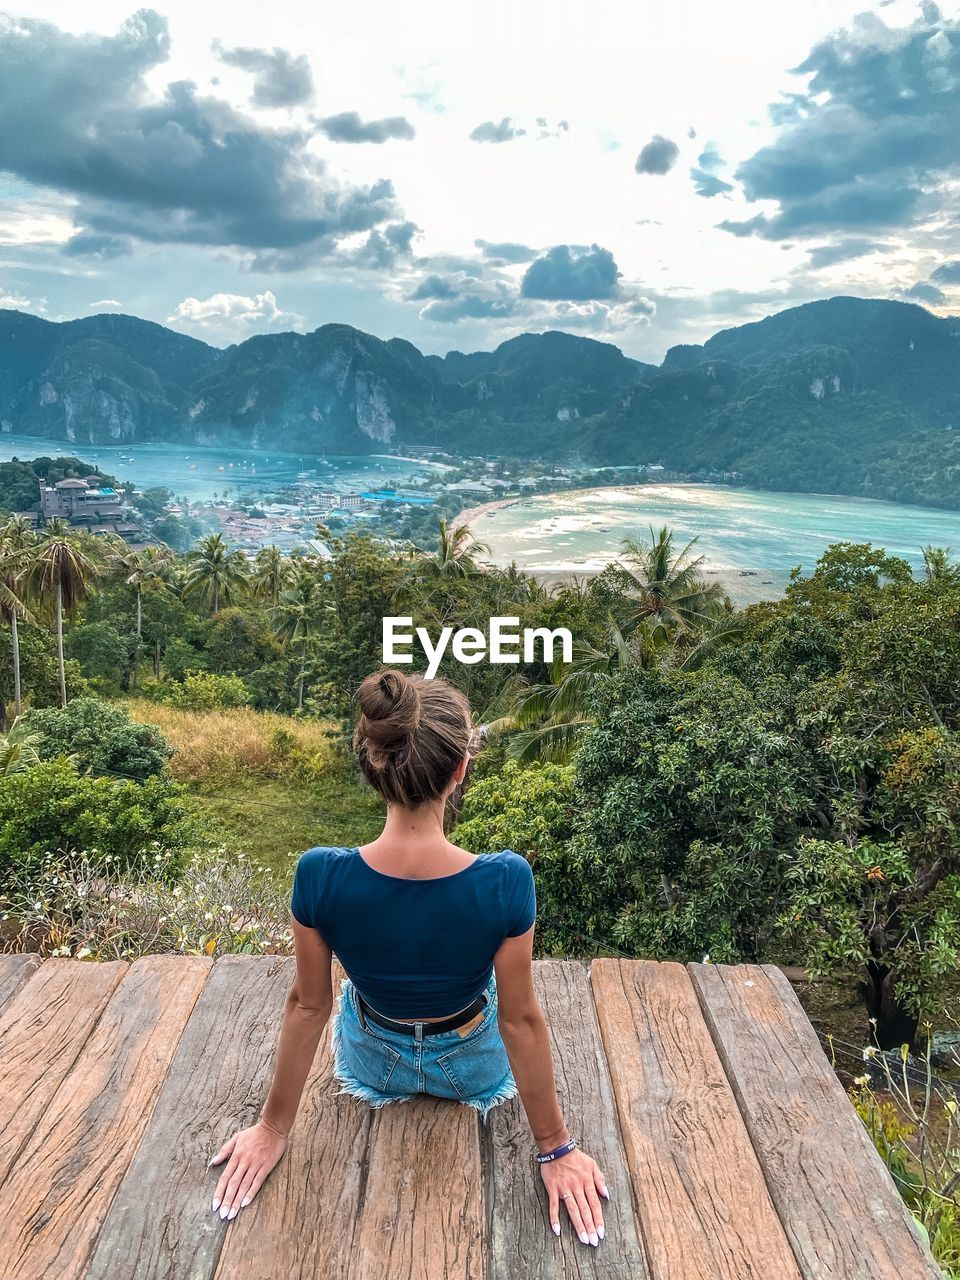 REAR VIEW OF WOMAN SITTING ON WOOD LOOKING AT MOUNTAINS